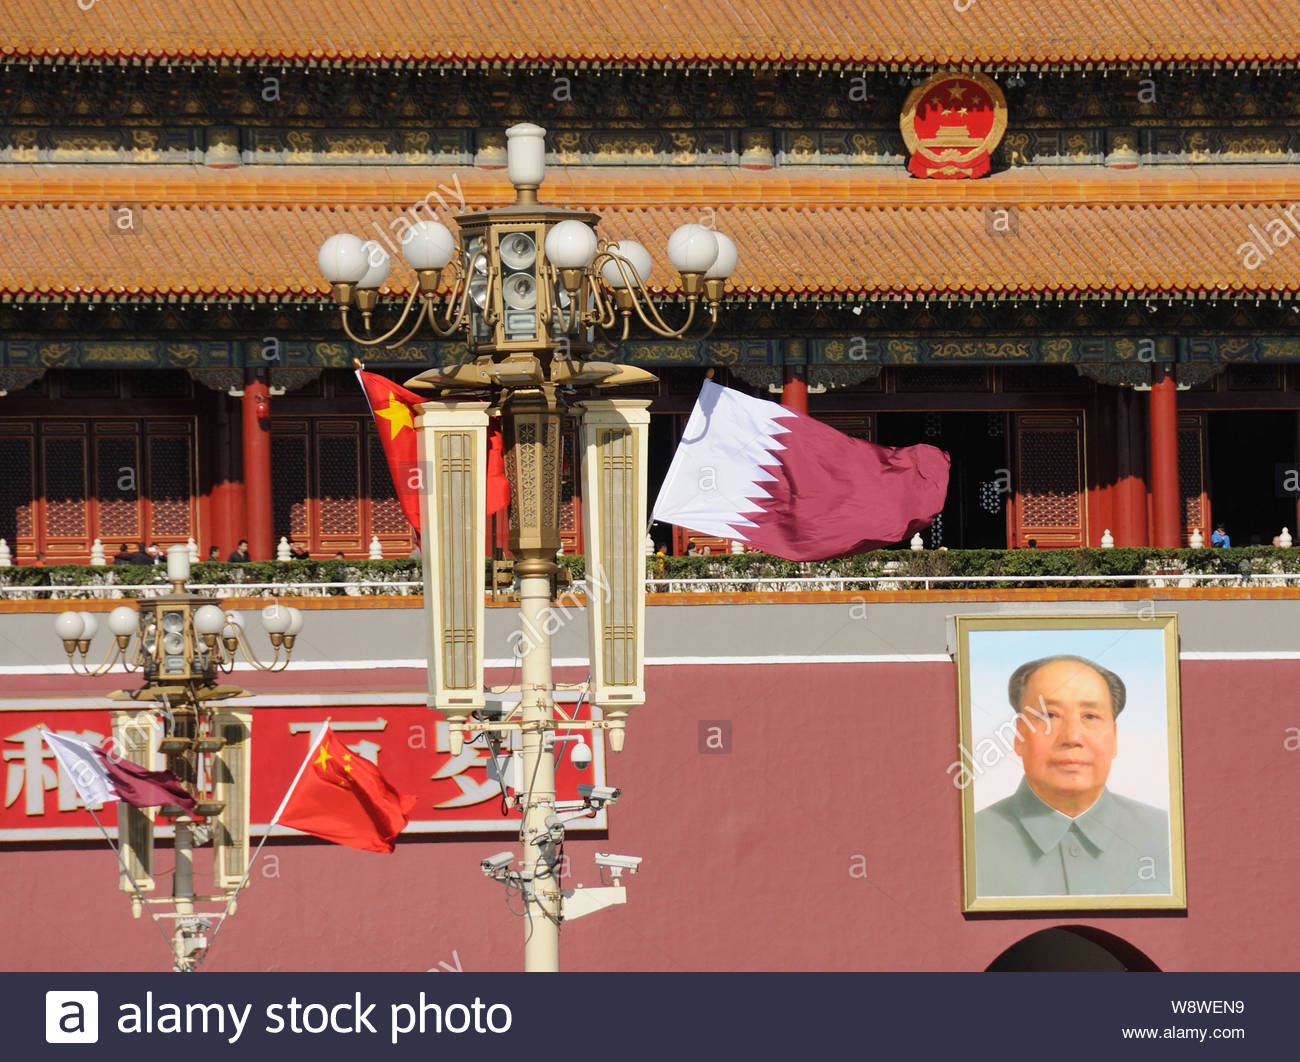 Chinese and Qatari national flags flutter on lampposts in front of the Tiananmen Rostrum during the visit of Qatar's Emir Sheikh Tamim bin Hamad al-Th Stock Photo